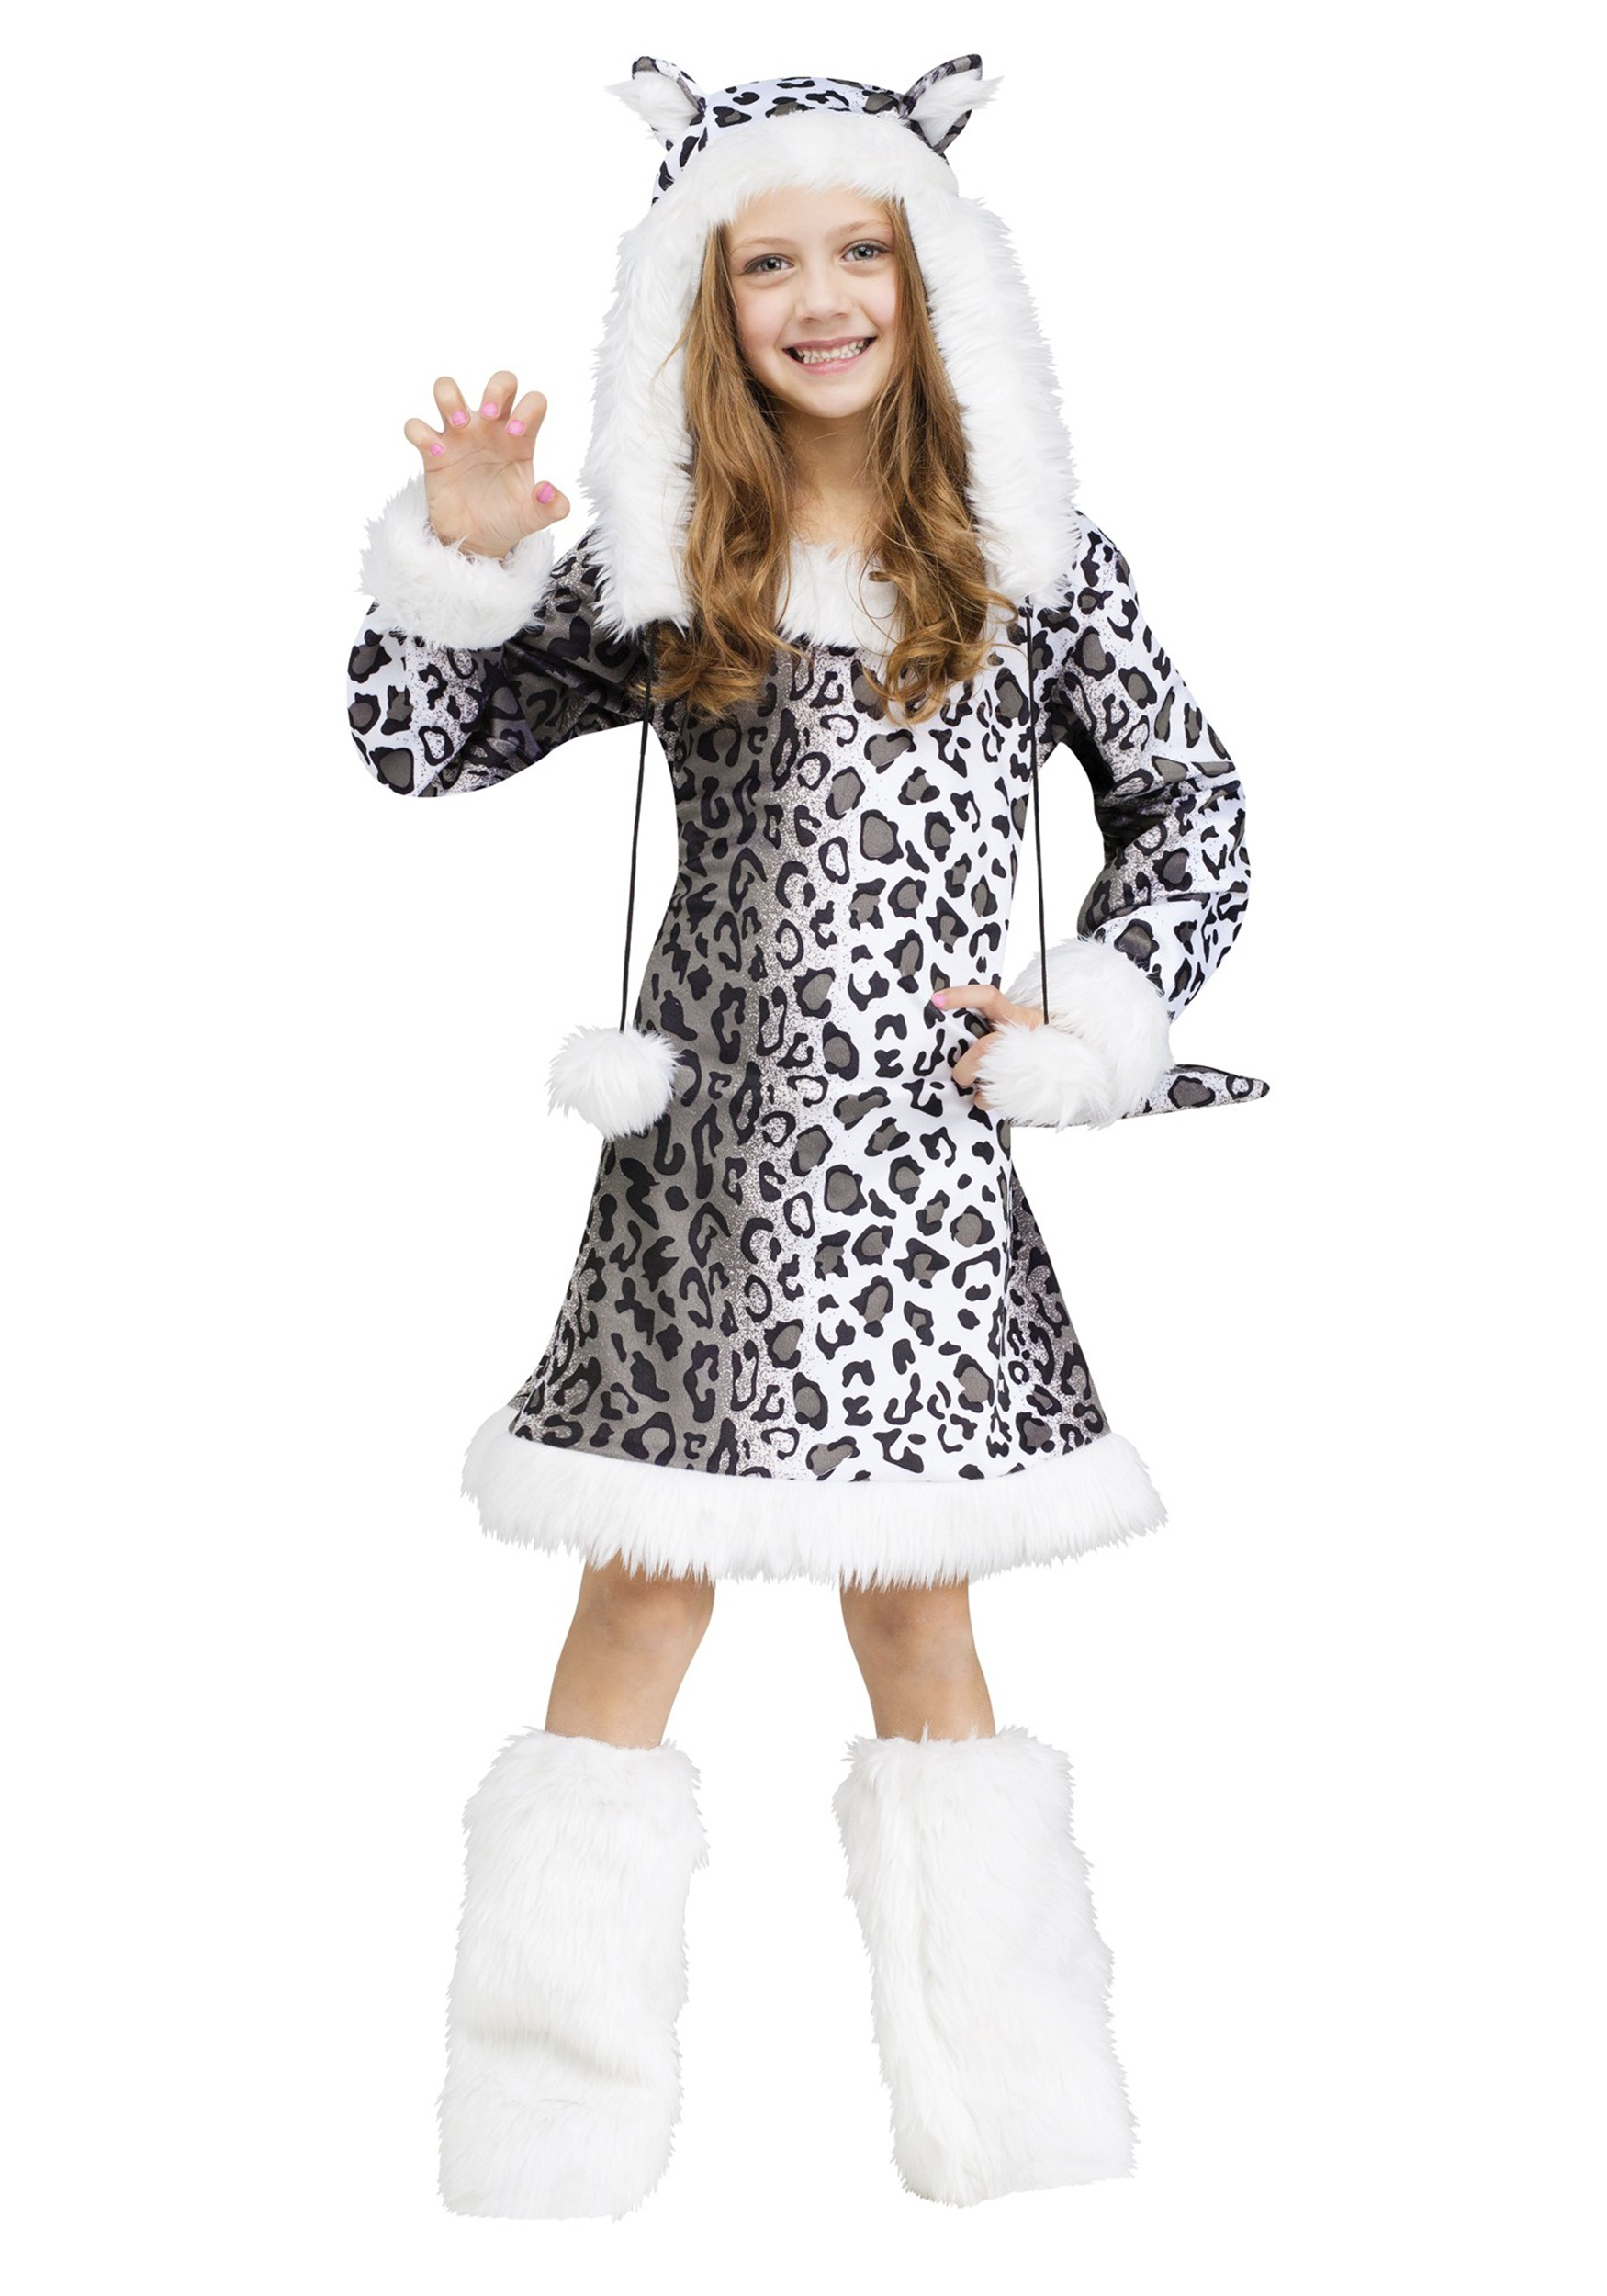 Snow Leopard Costume for Girls